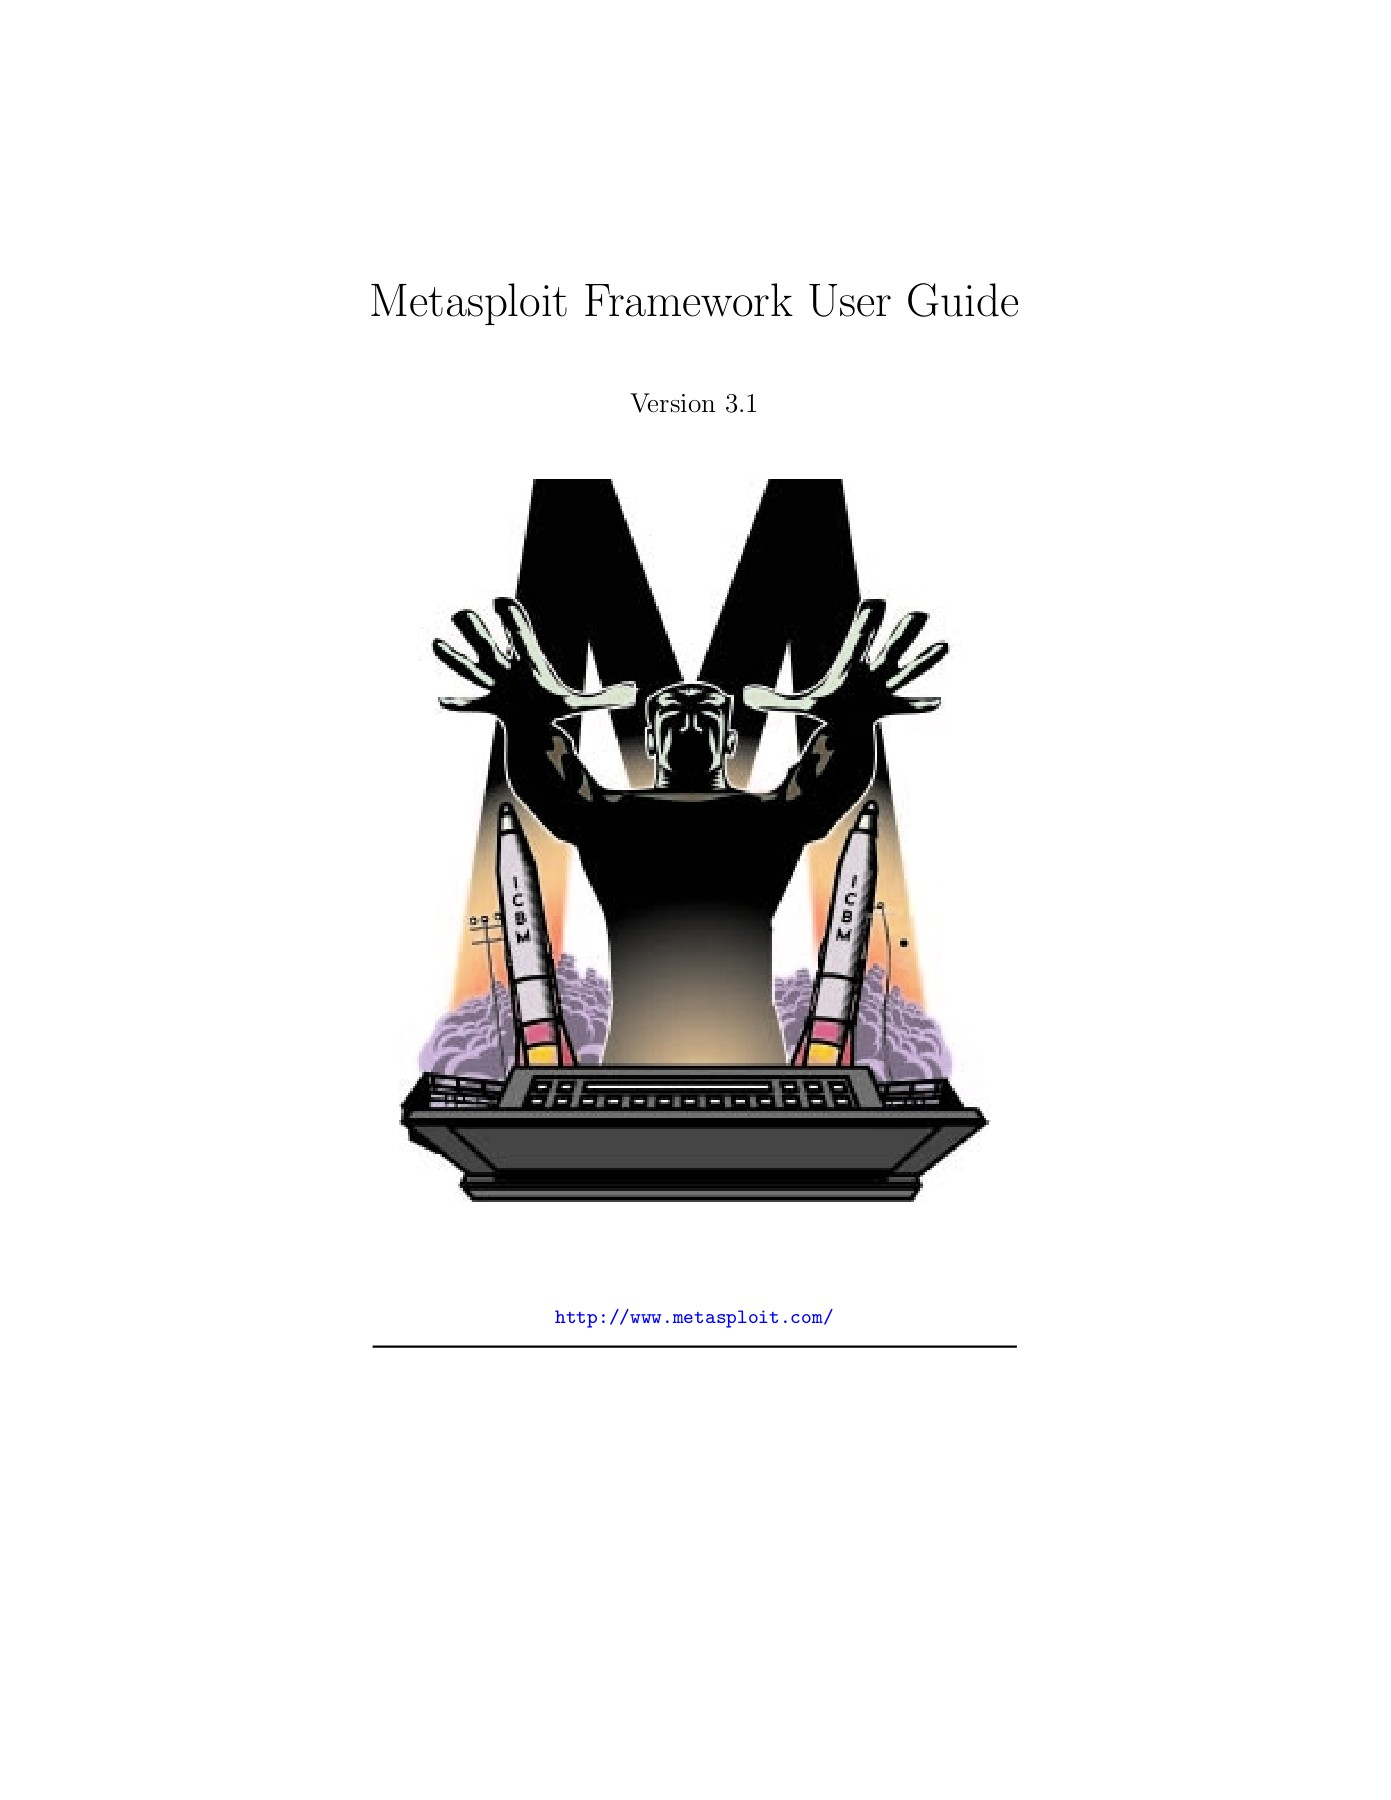 Metasploit Framework User Guide - EAS Home Pages 1 - 30 - Text